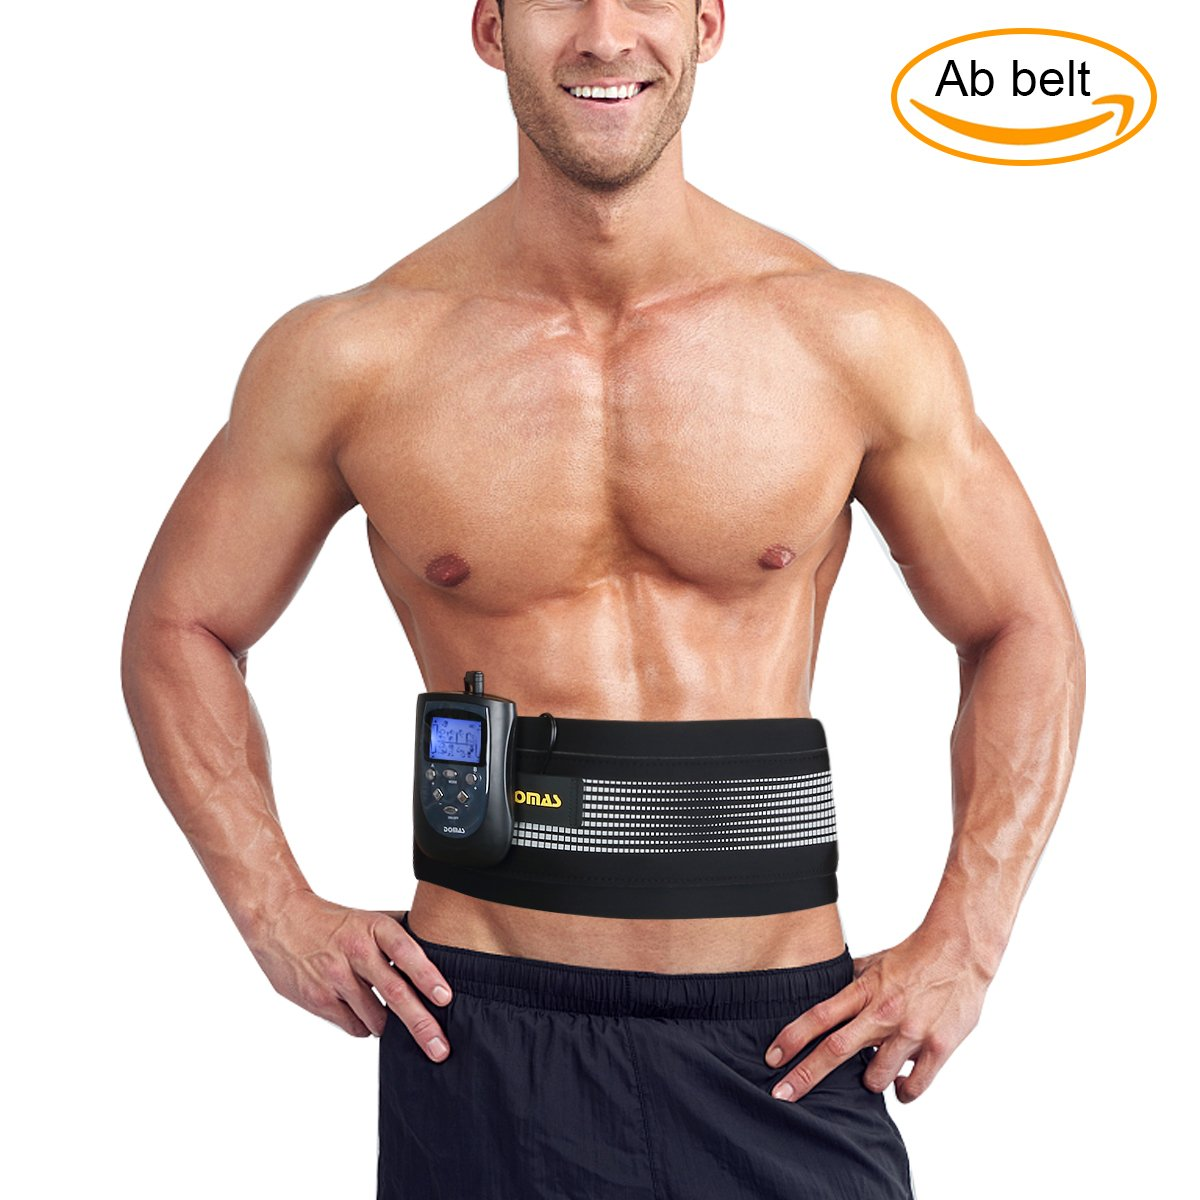 DOMAS Ab Belt Abs Stimulator Electronic Muscle Stimulator Toning belt for Men and Women by DOMAS